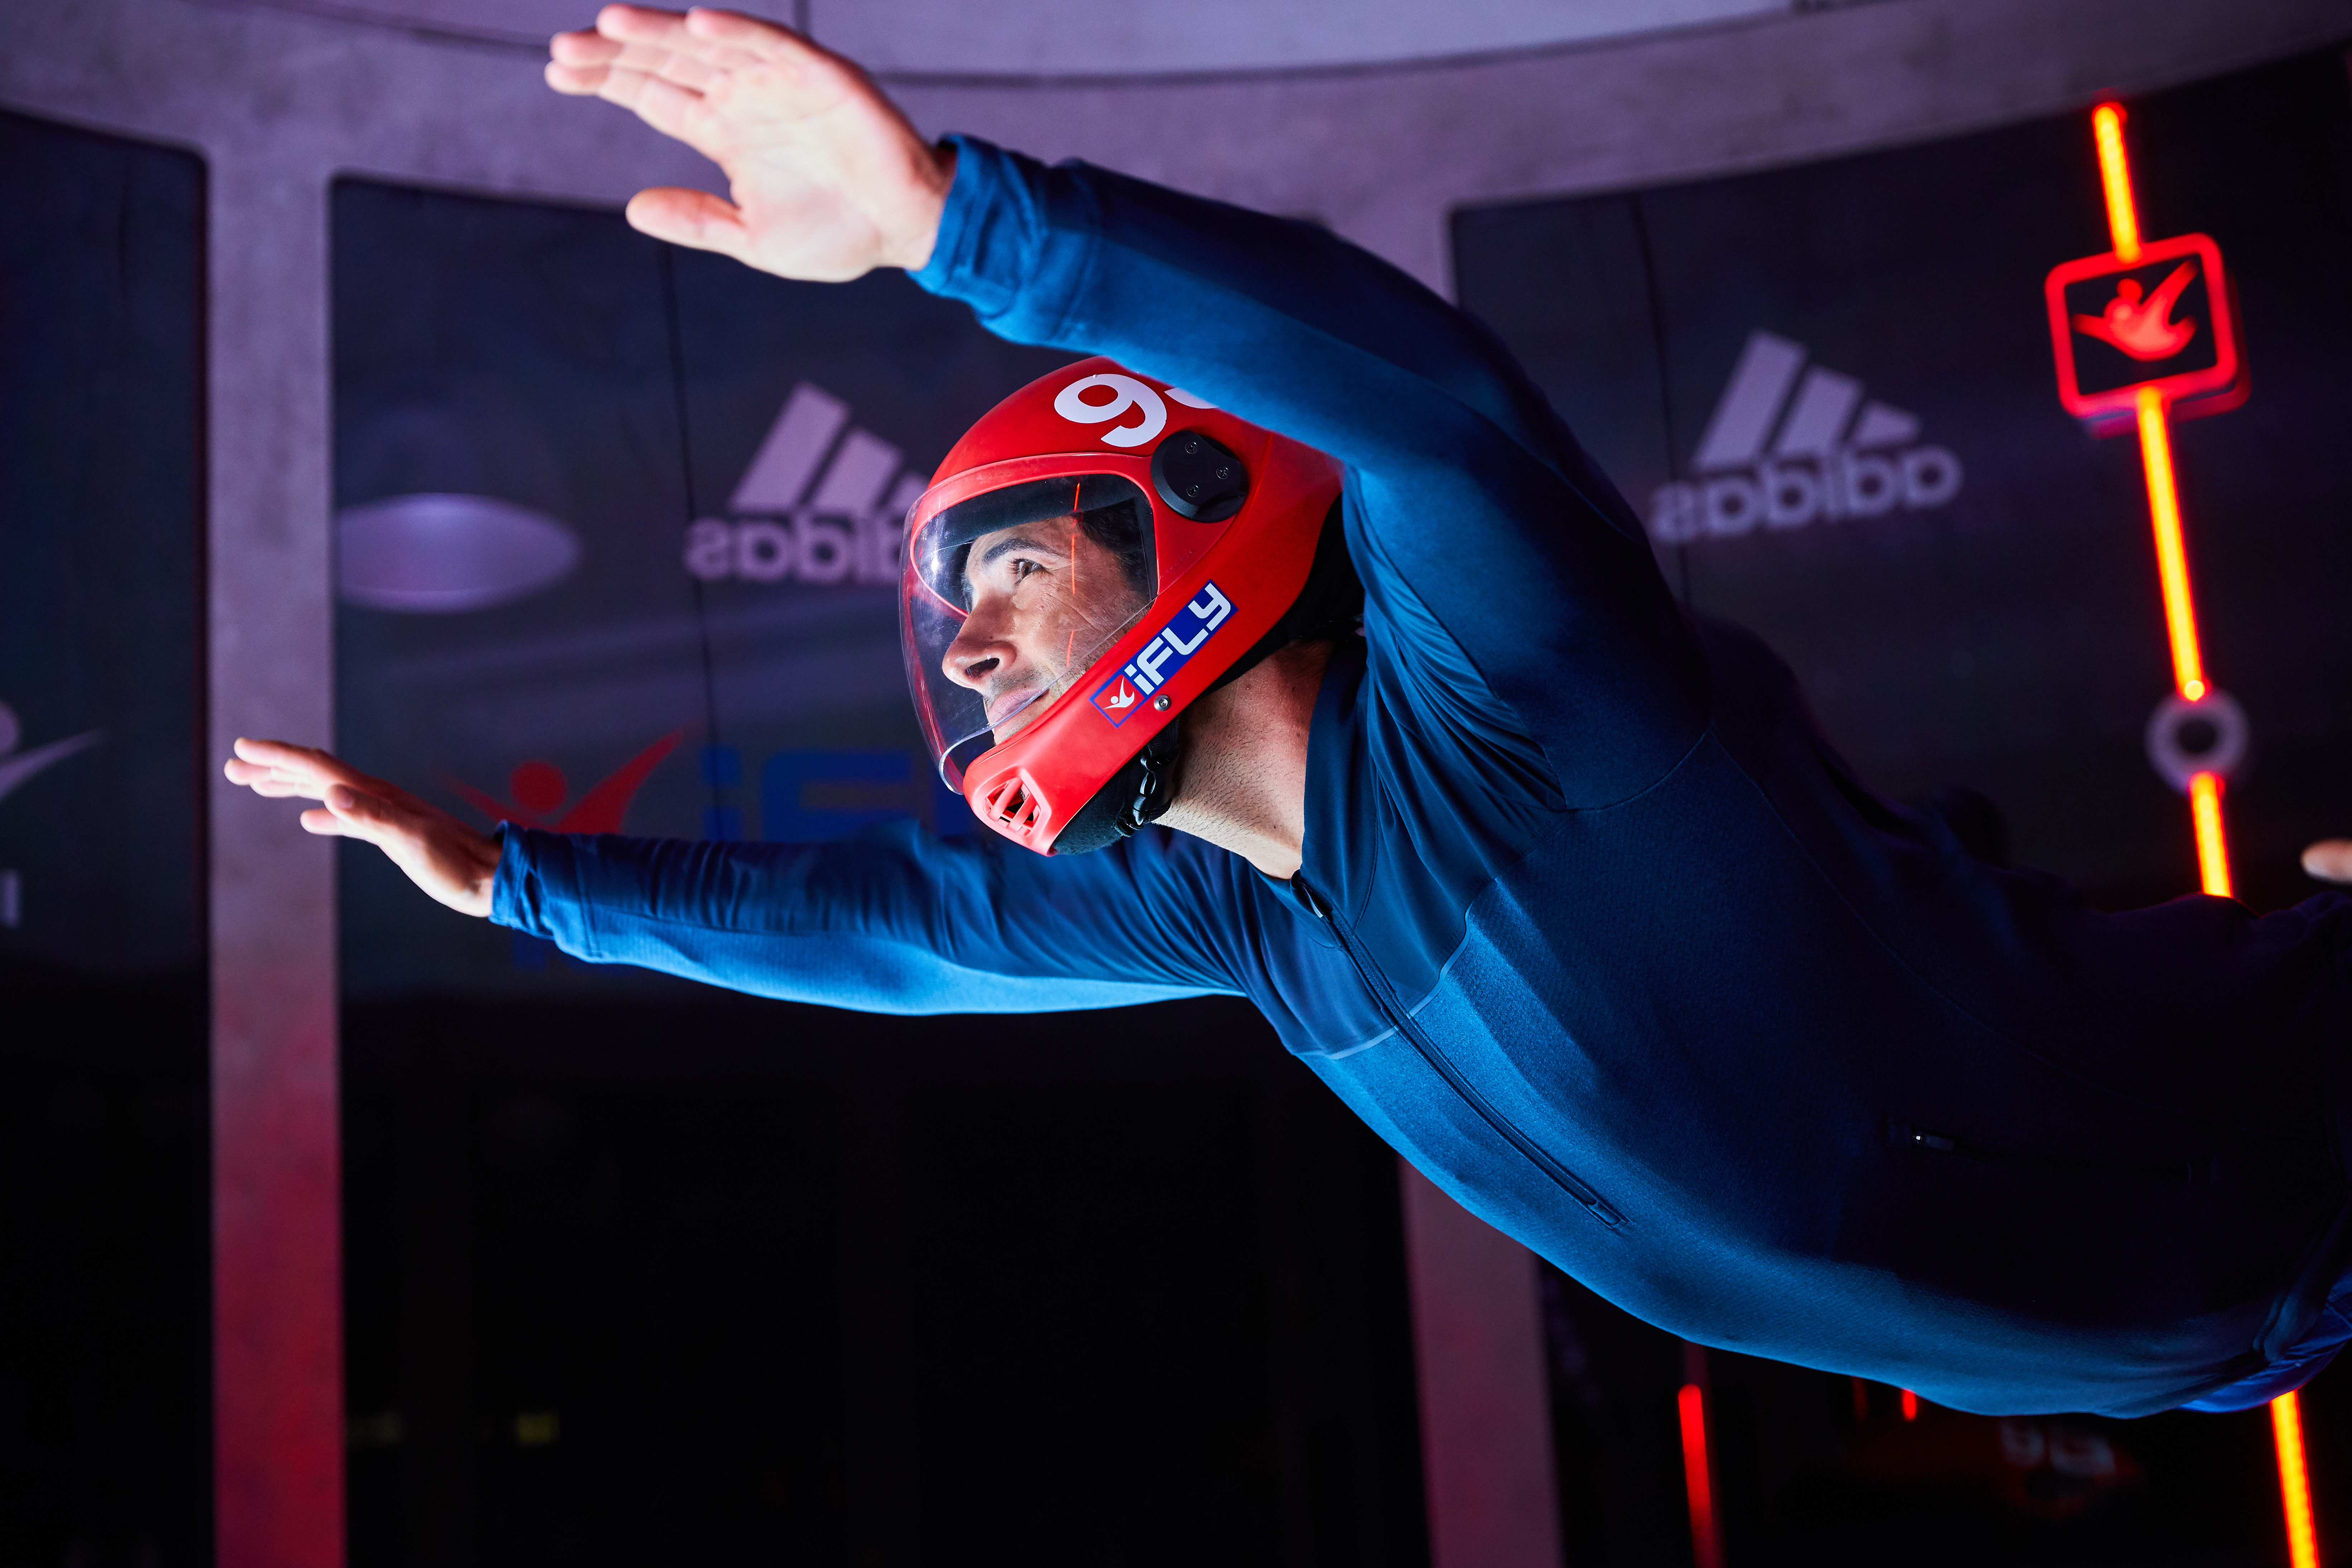 adidas Golf reaches new heights with the Go-To Adapt jacket